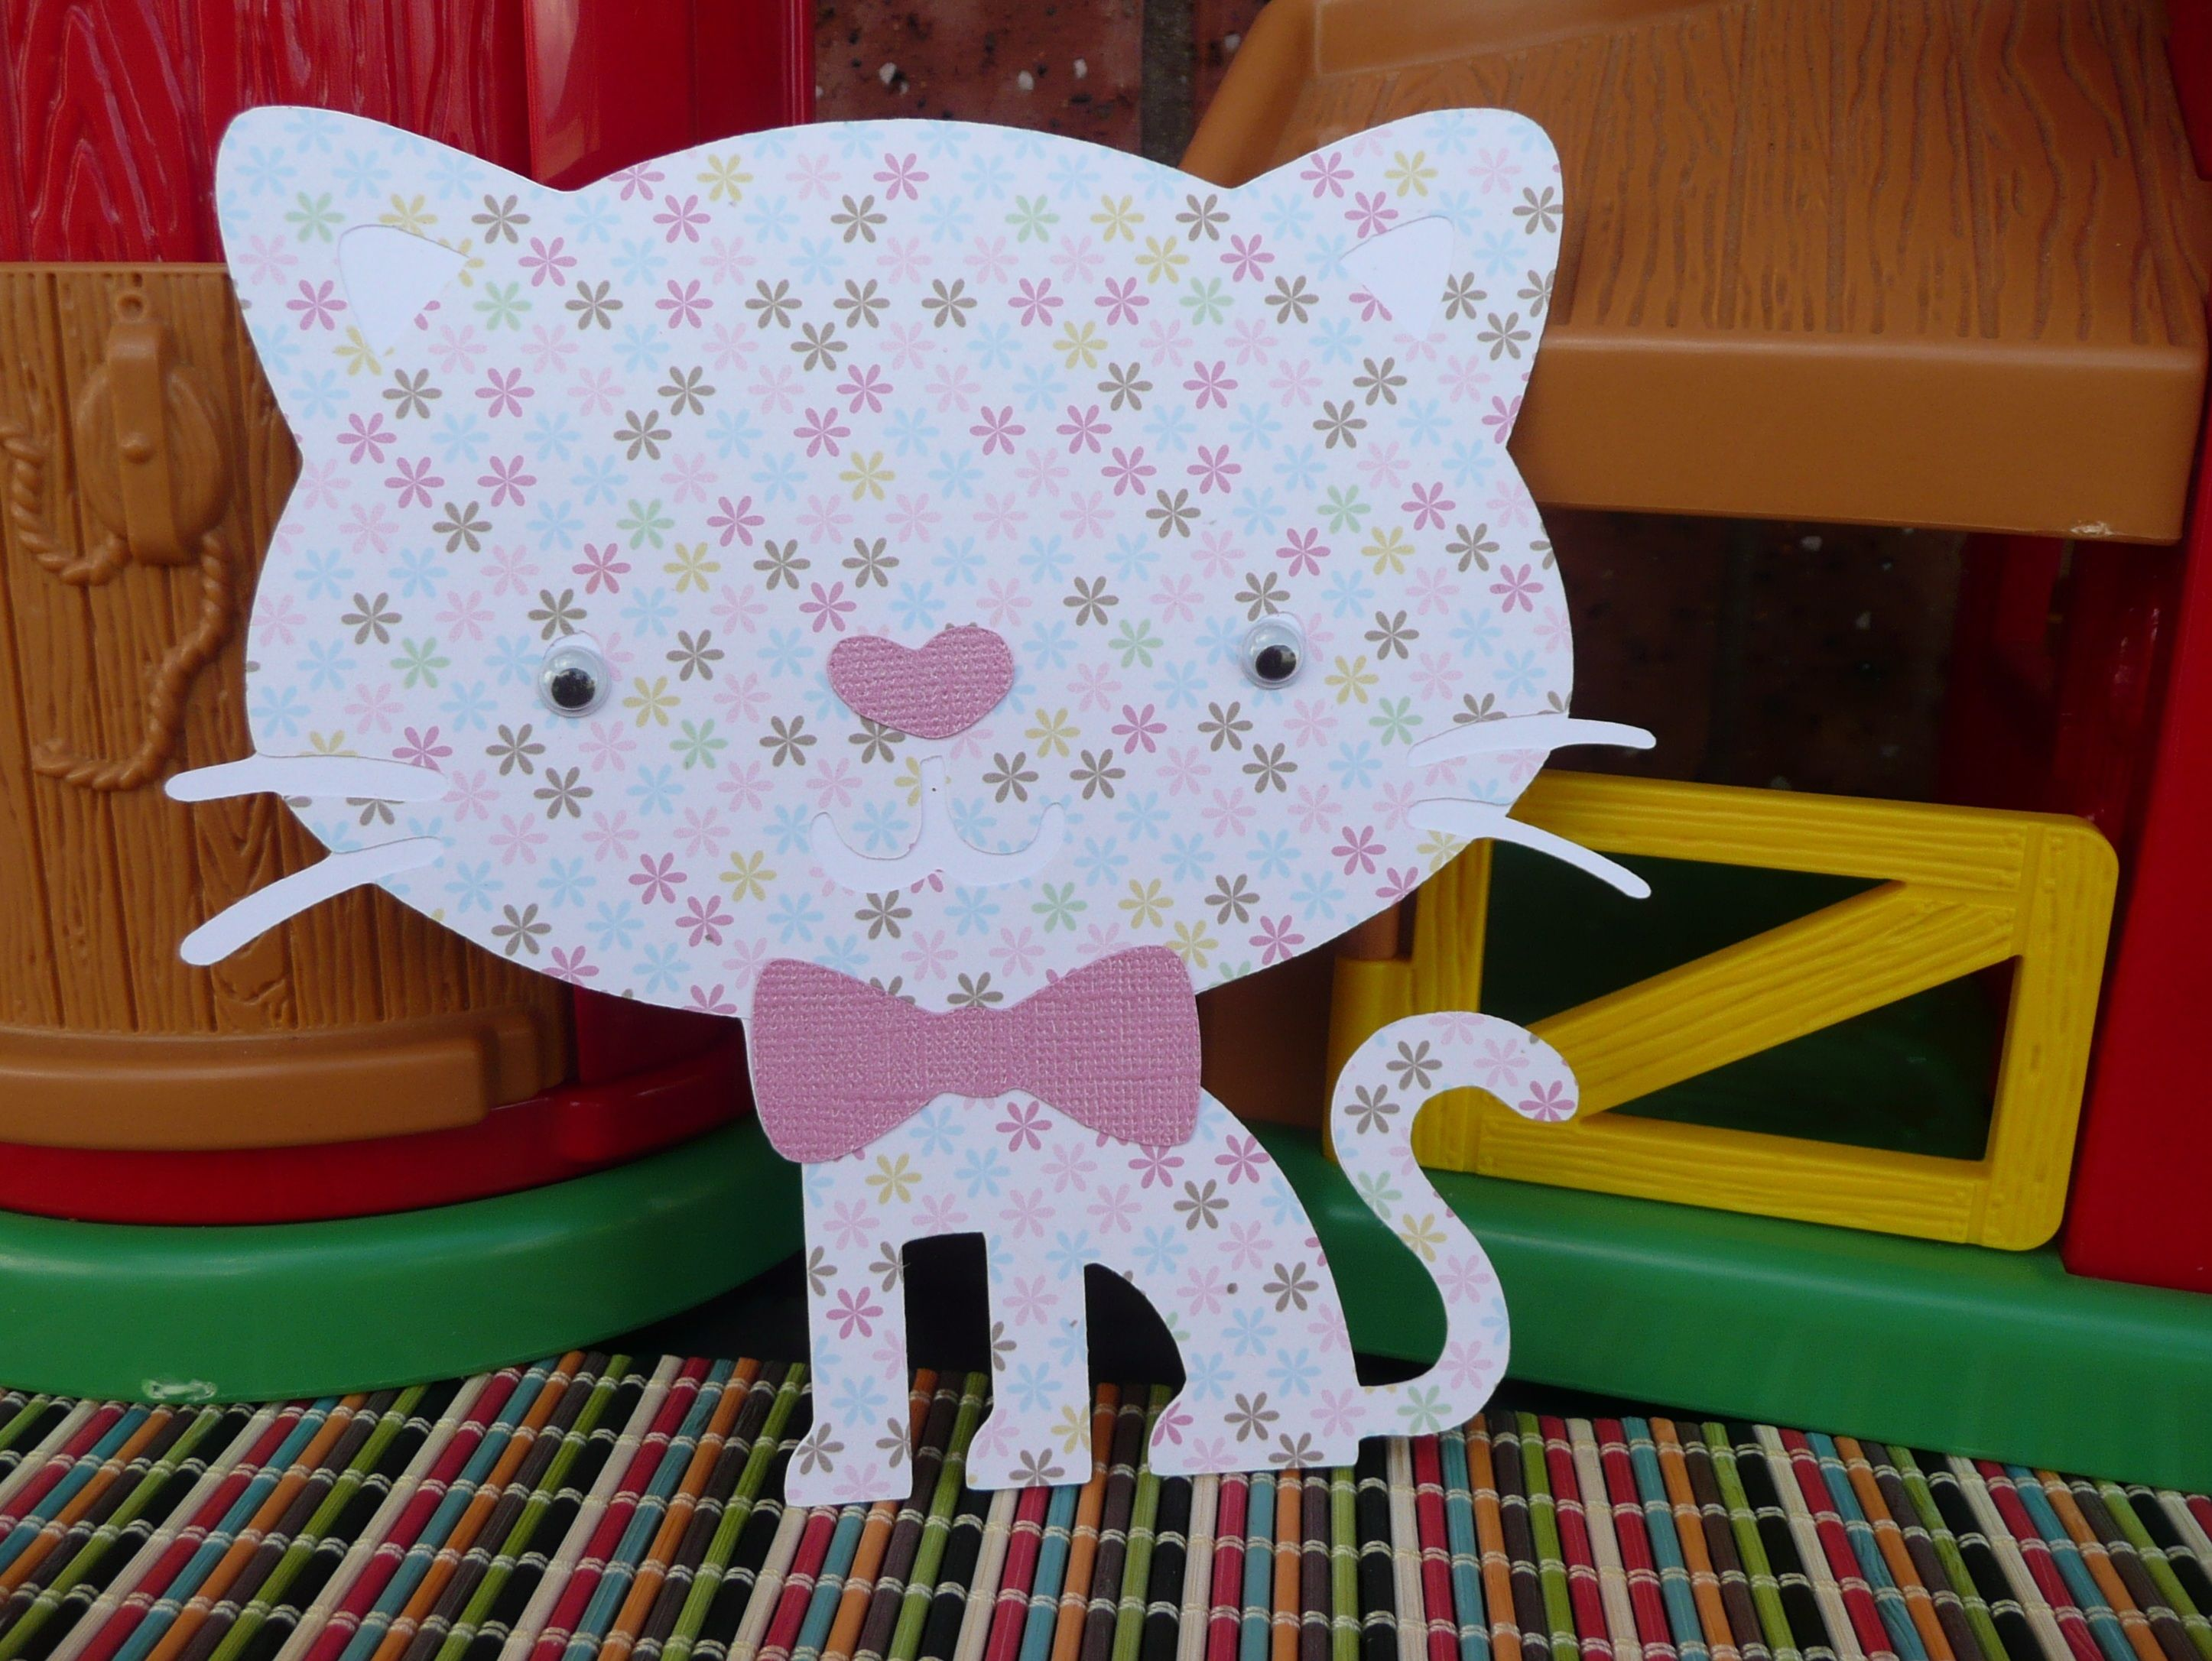 Barnyard party invitations CAT to order go to facebook – Order Party Invitations